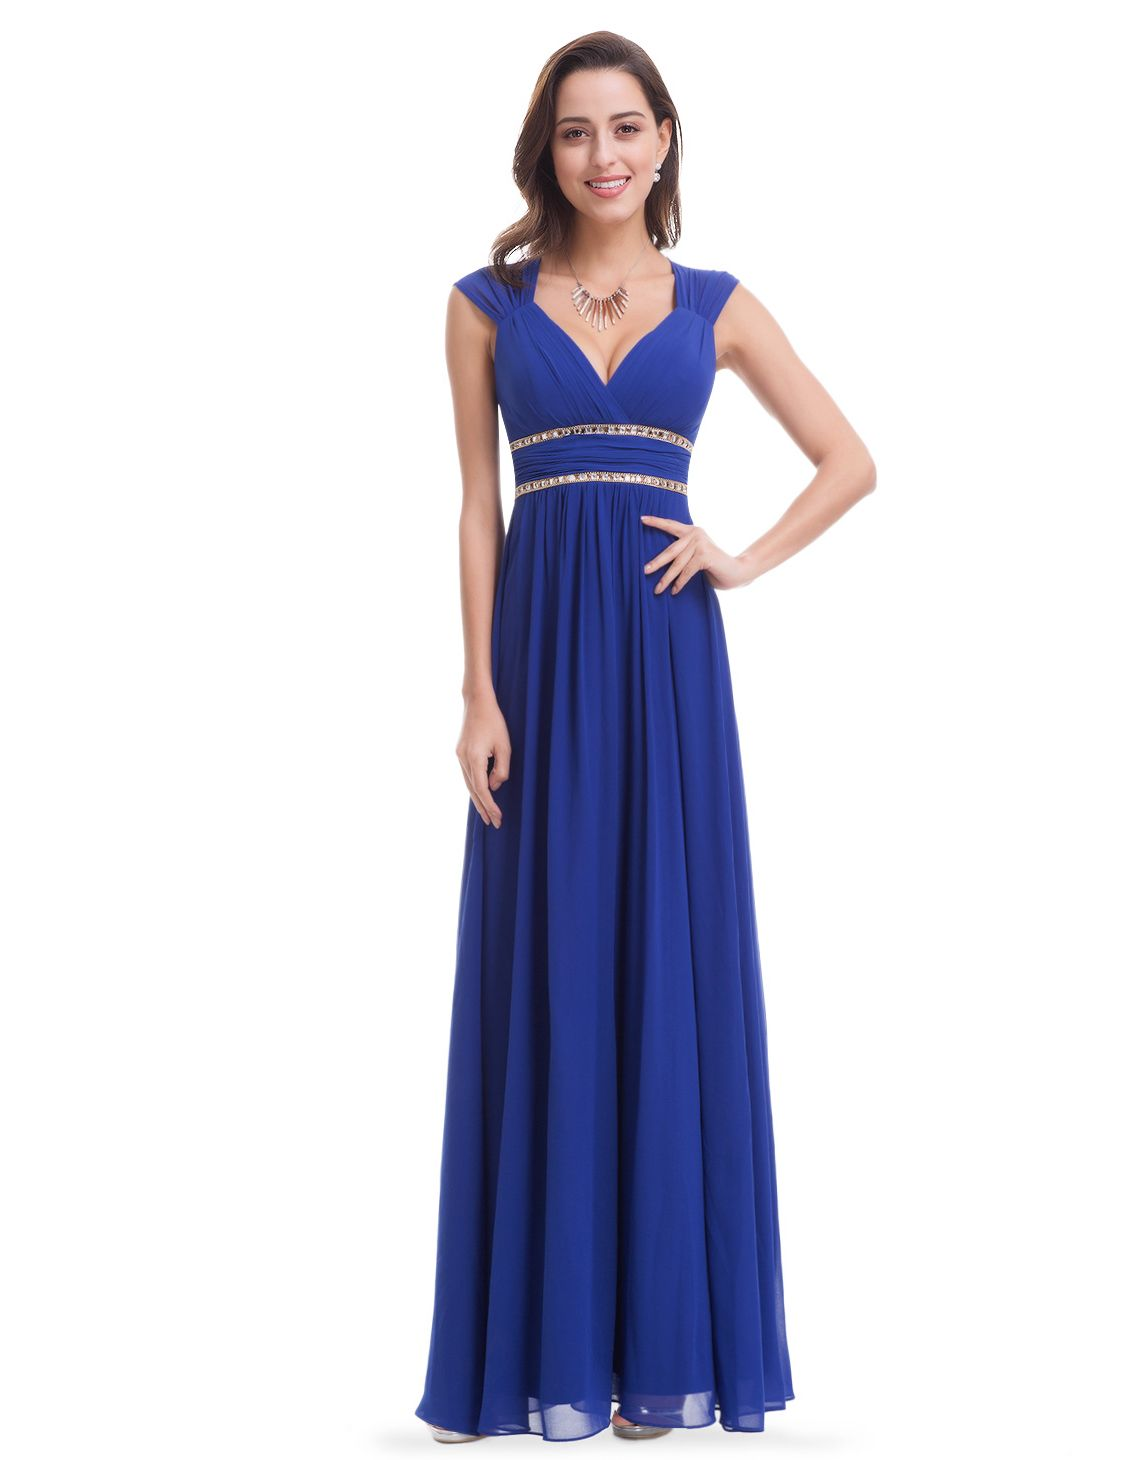 3889f9791611 Ever-Pretty Long Beaded Evening Cocktail Formal Party Bridesmaid Dress 08697 #Evening#Cocktail#Beaded